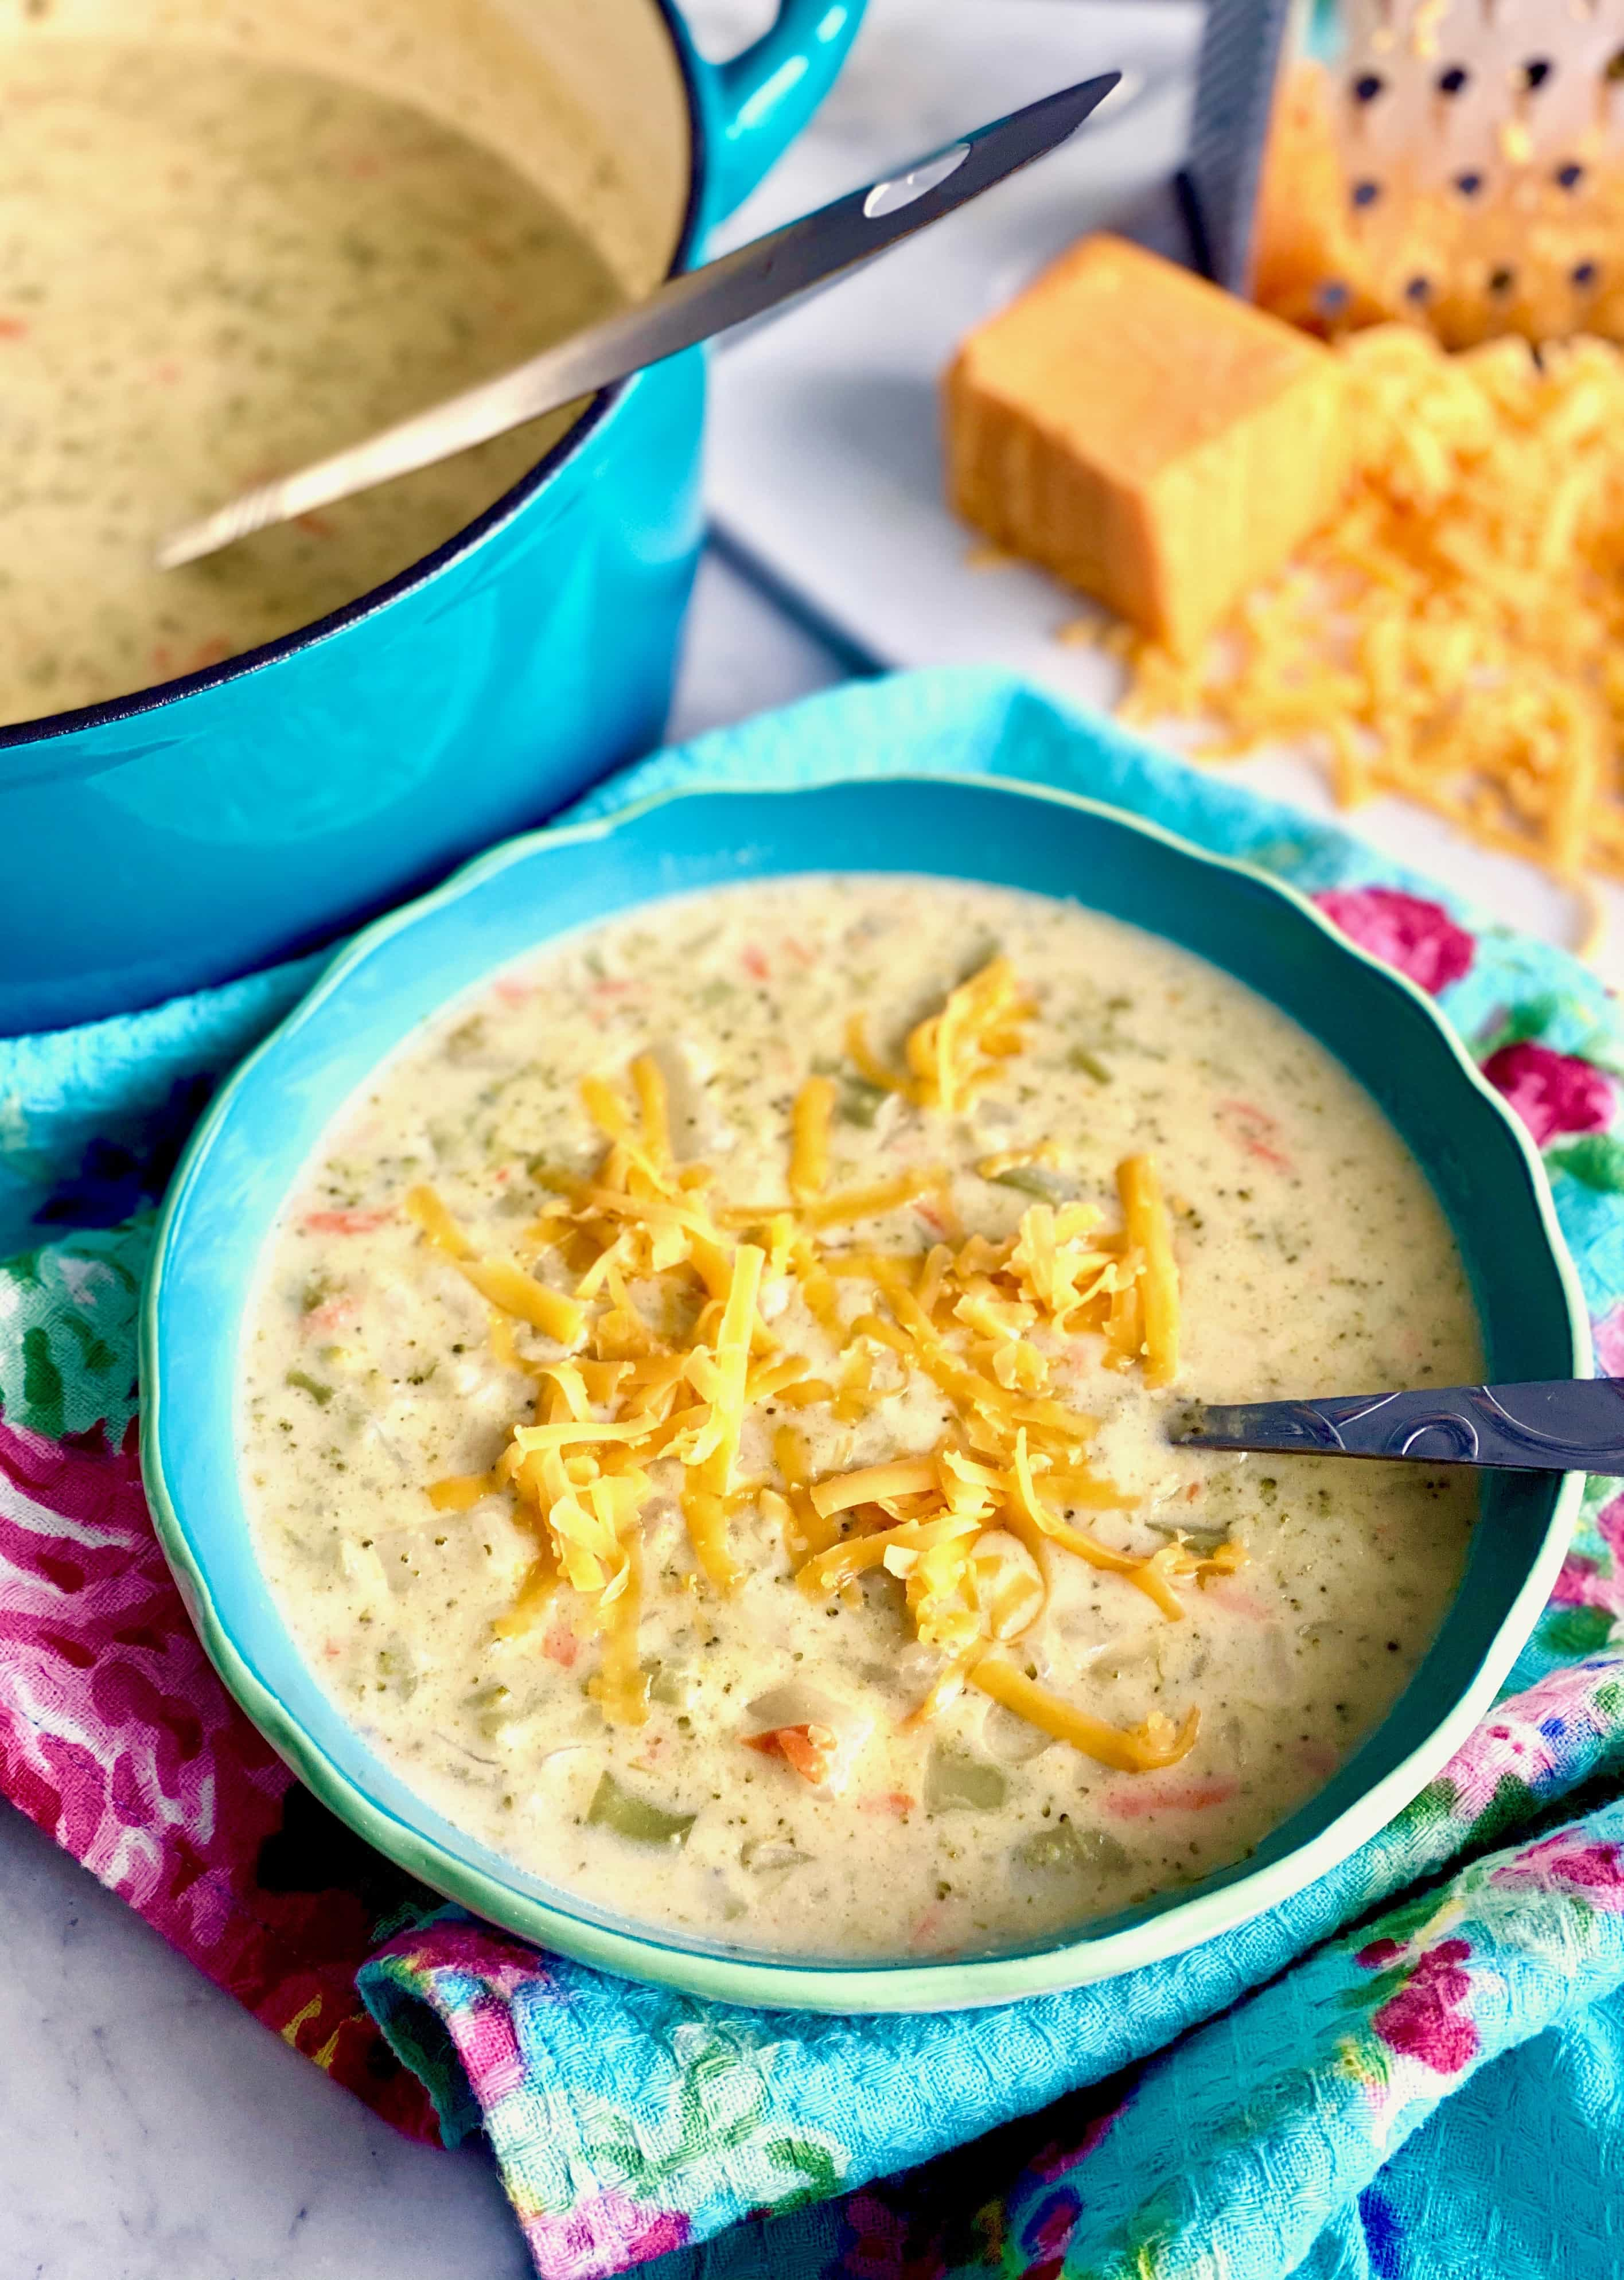 broccoli cheese chowder in blue bowl with dutch oven in background